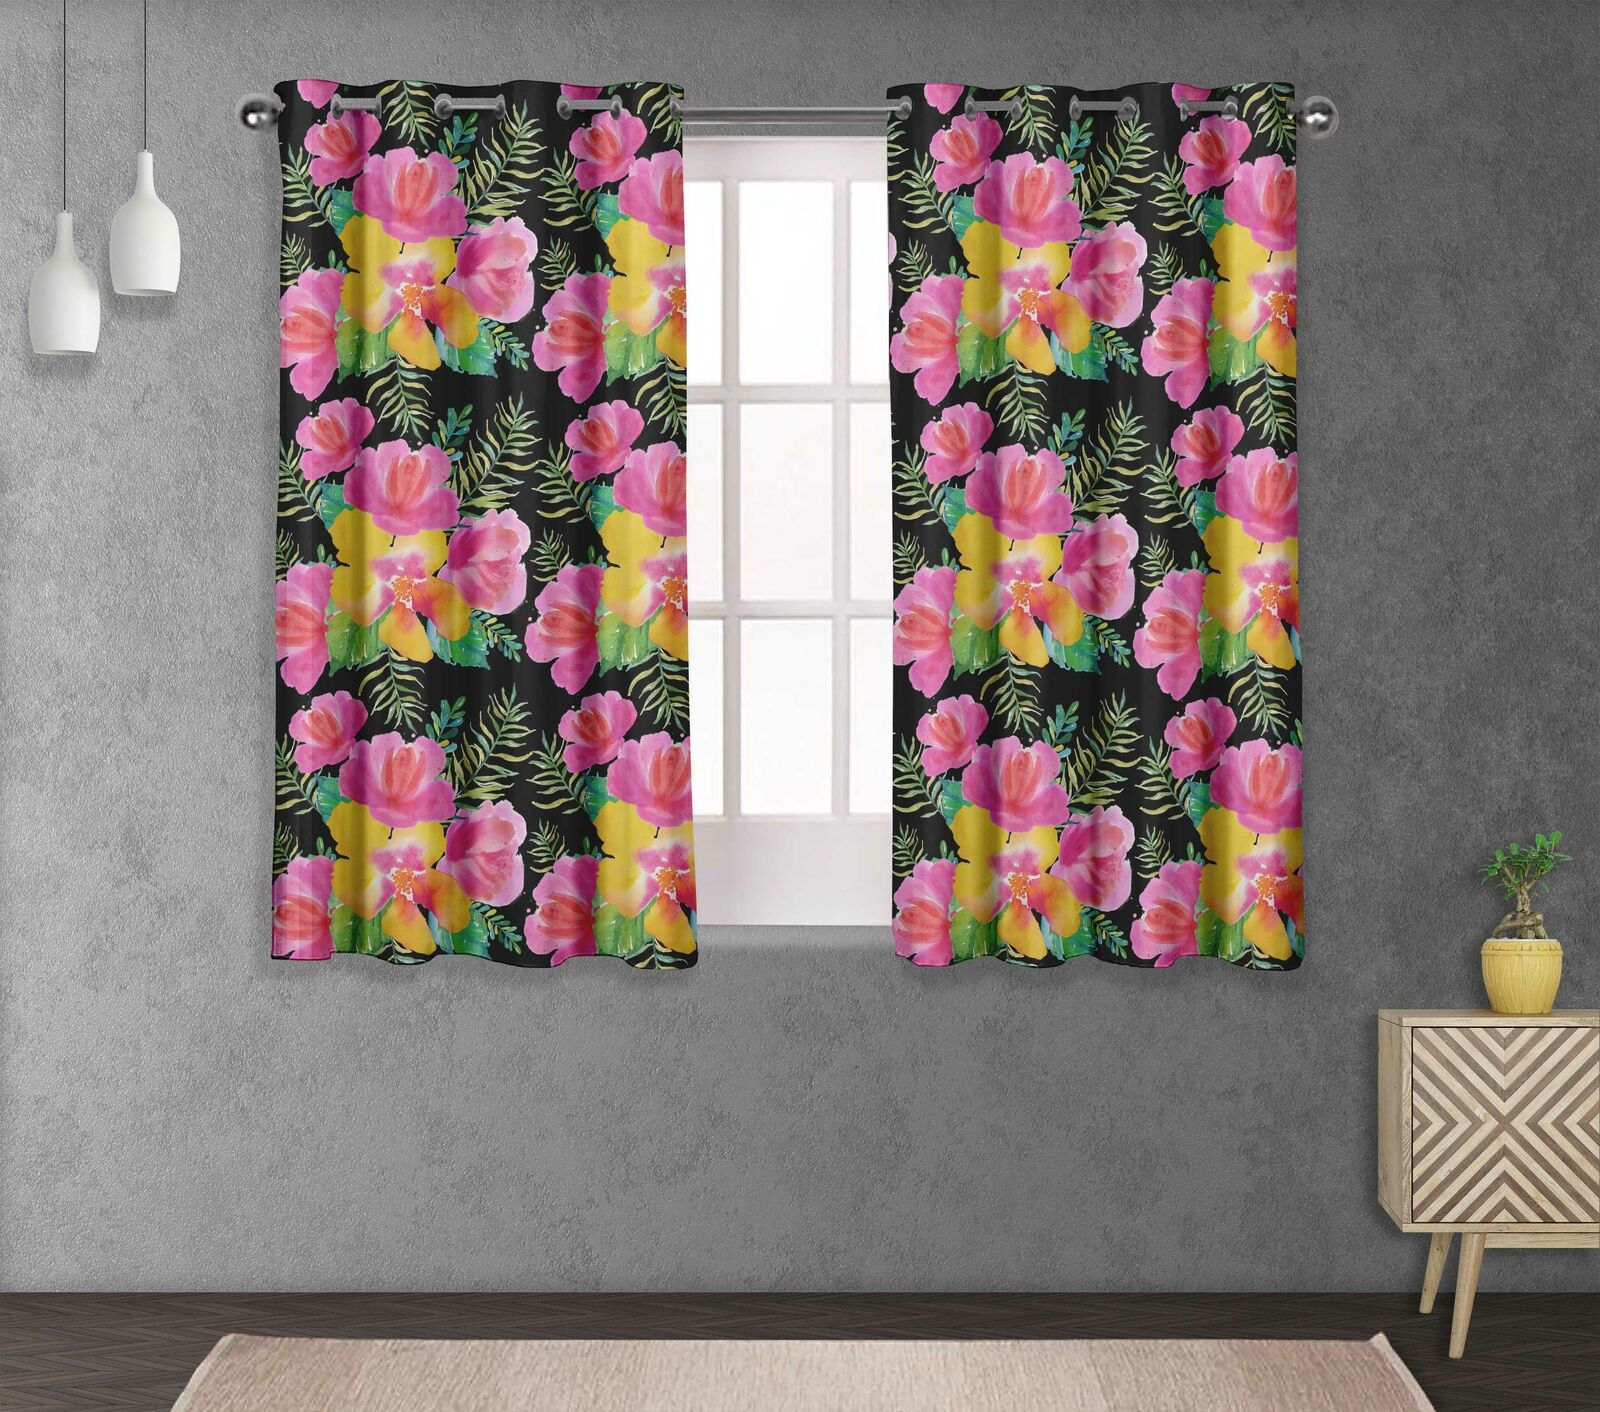 S4sassy Flower Living Room Eyelet Curtain Drapers -FL-675A